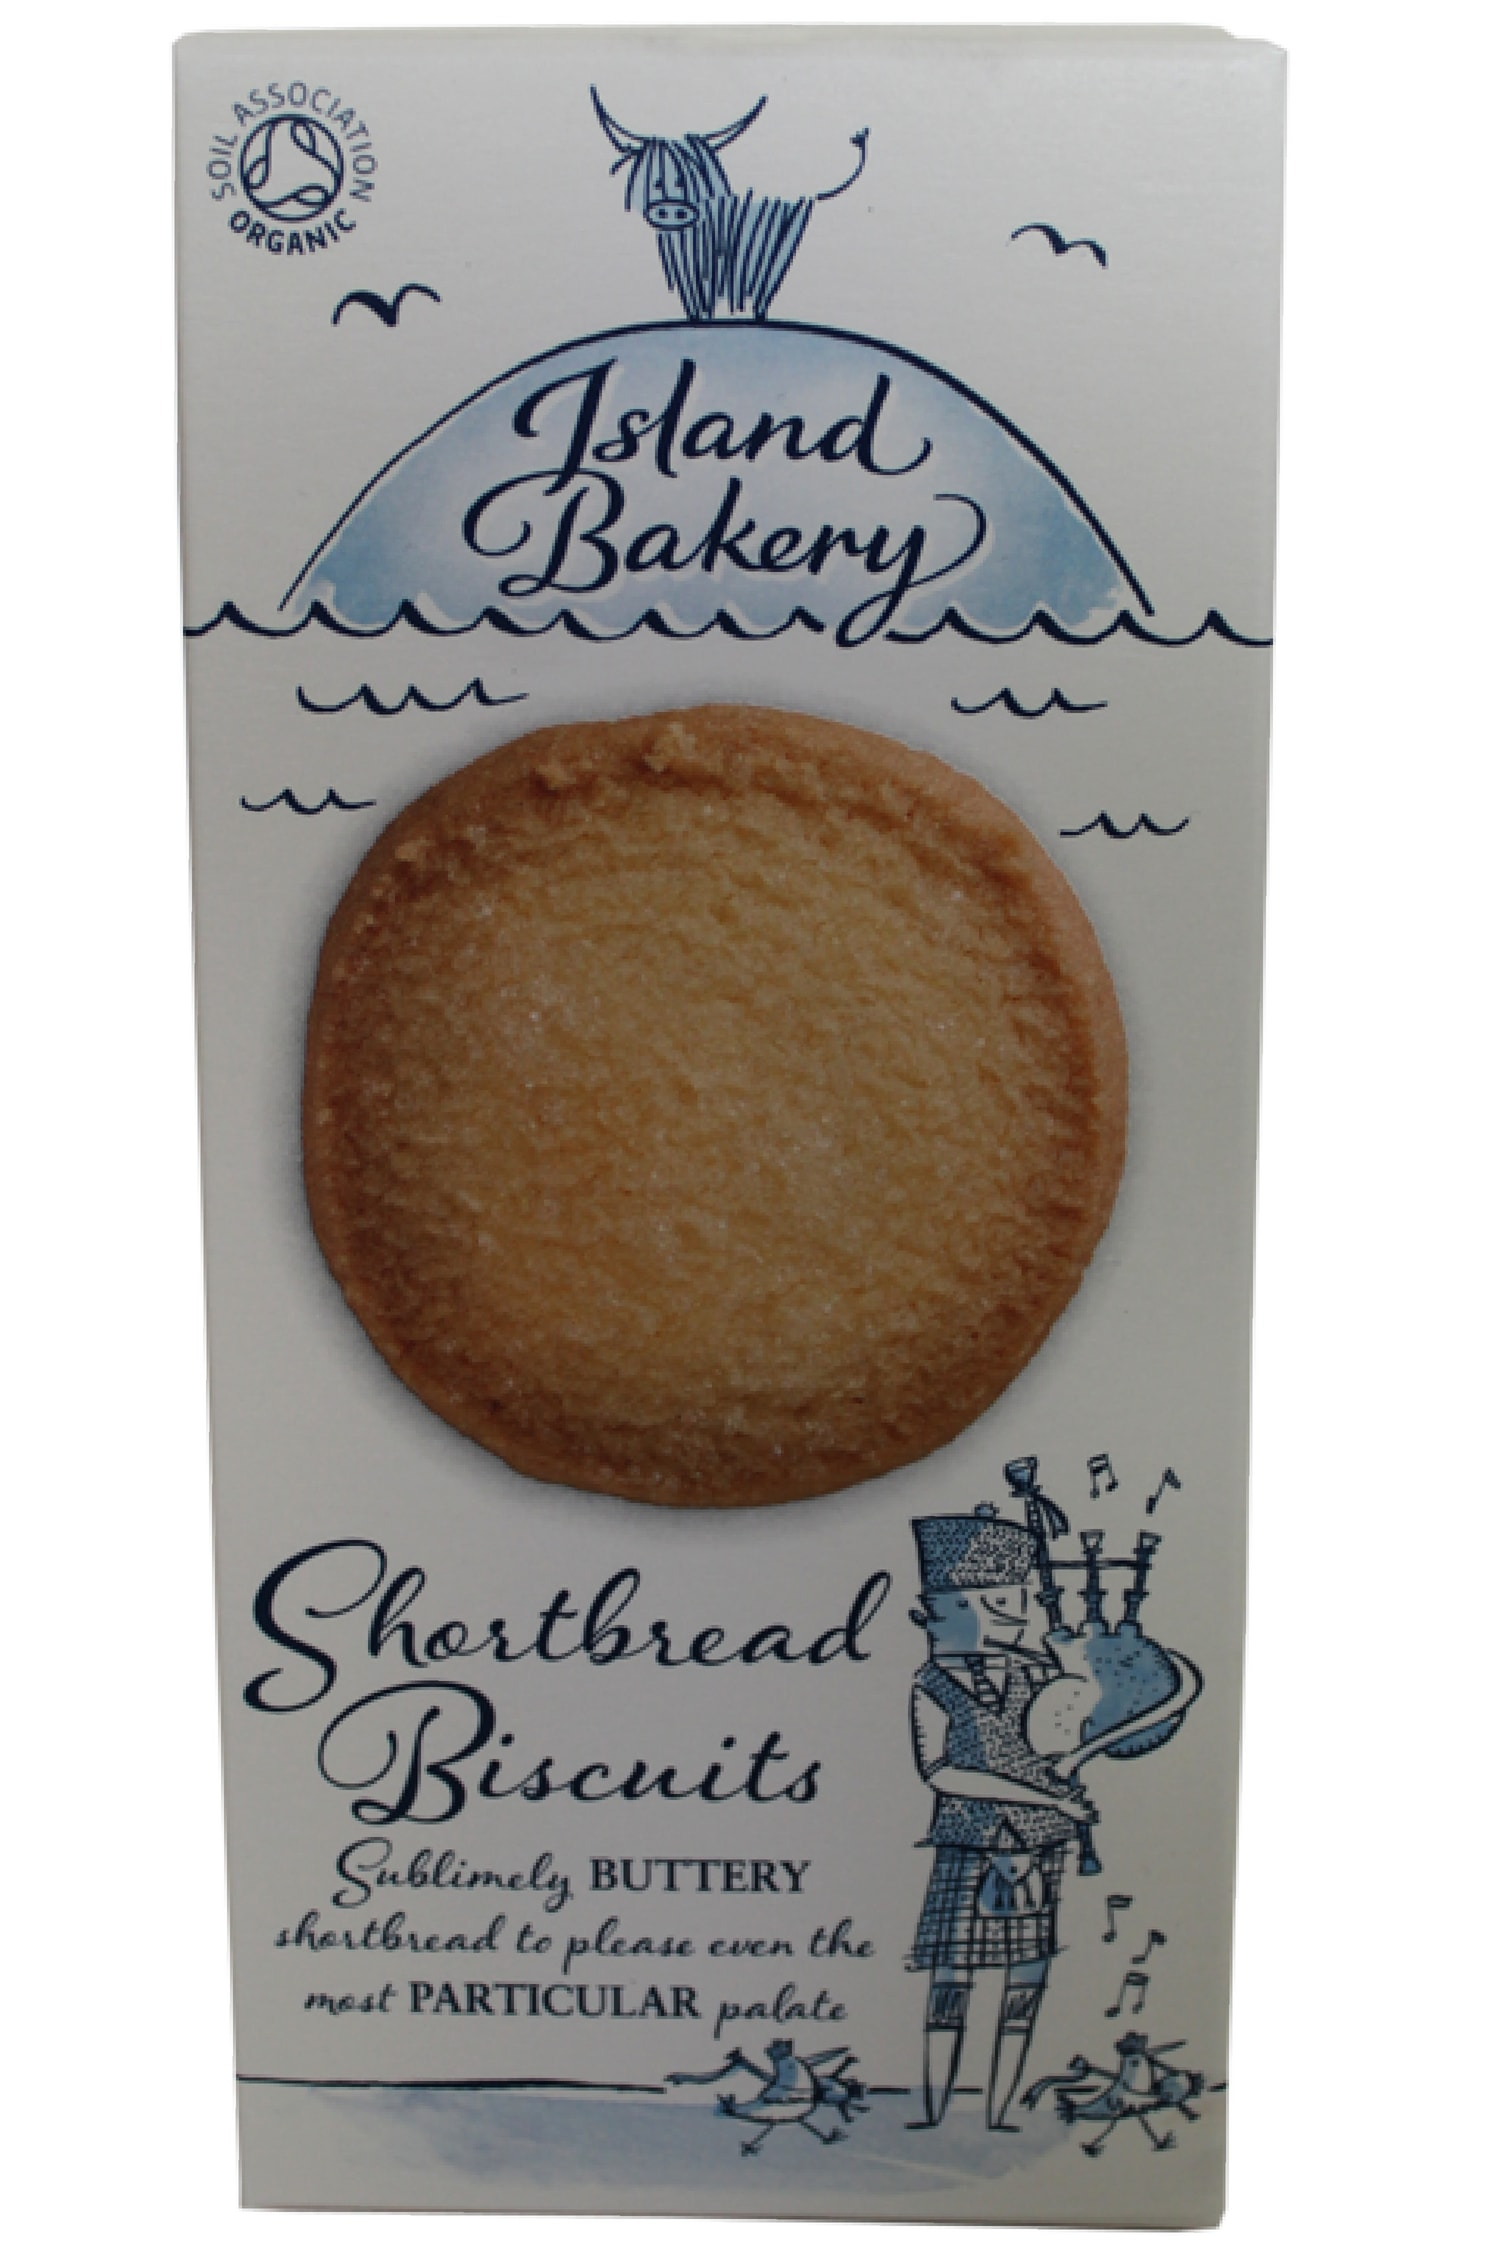 There's no nonsense here, pure and simple. The ingredients list is short and sweet, just like these shortbread biscuits.